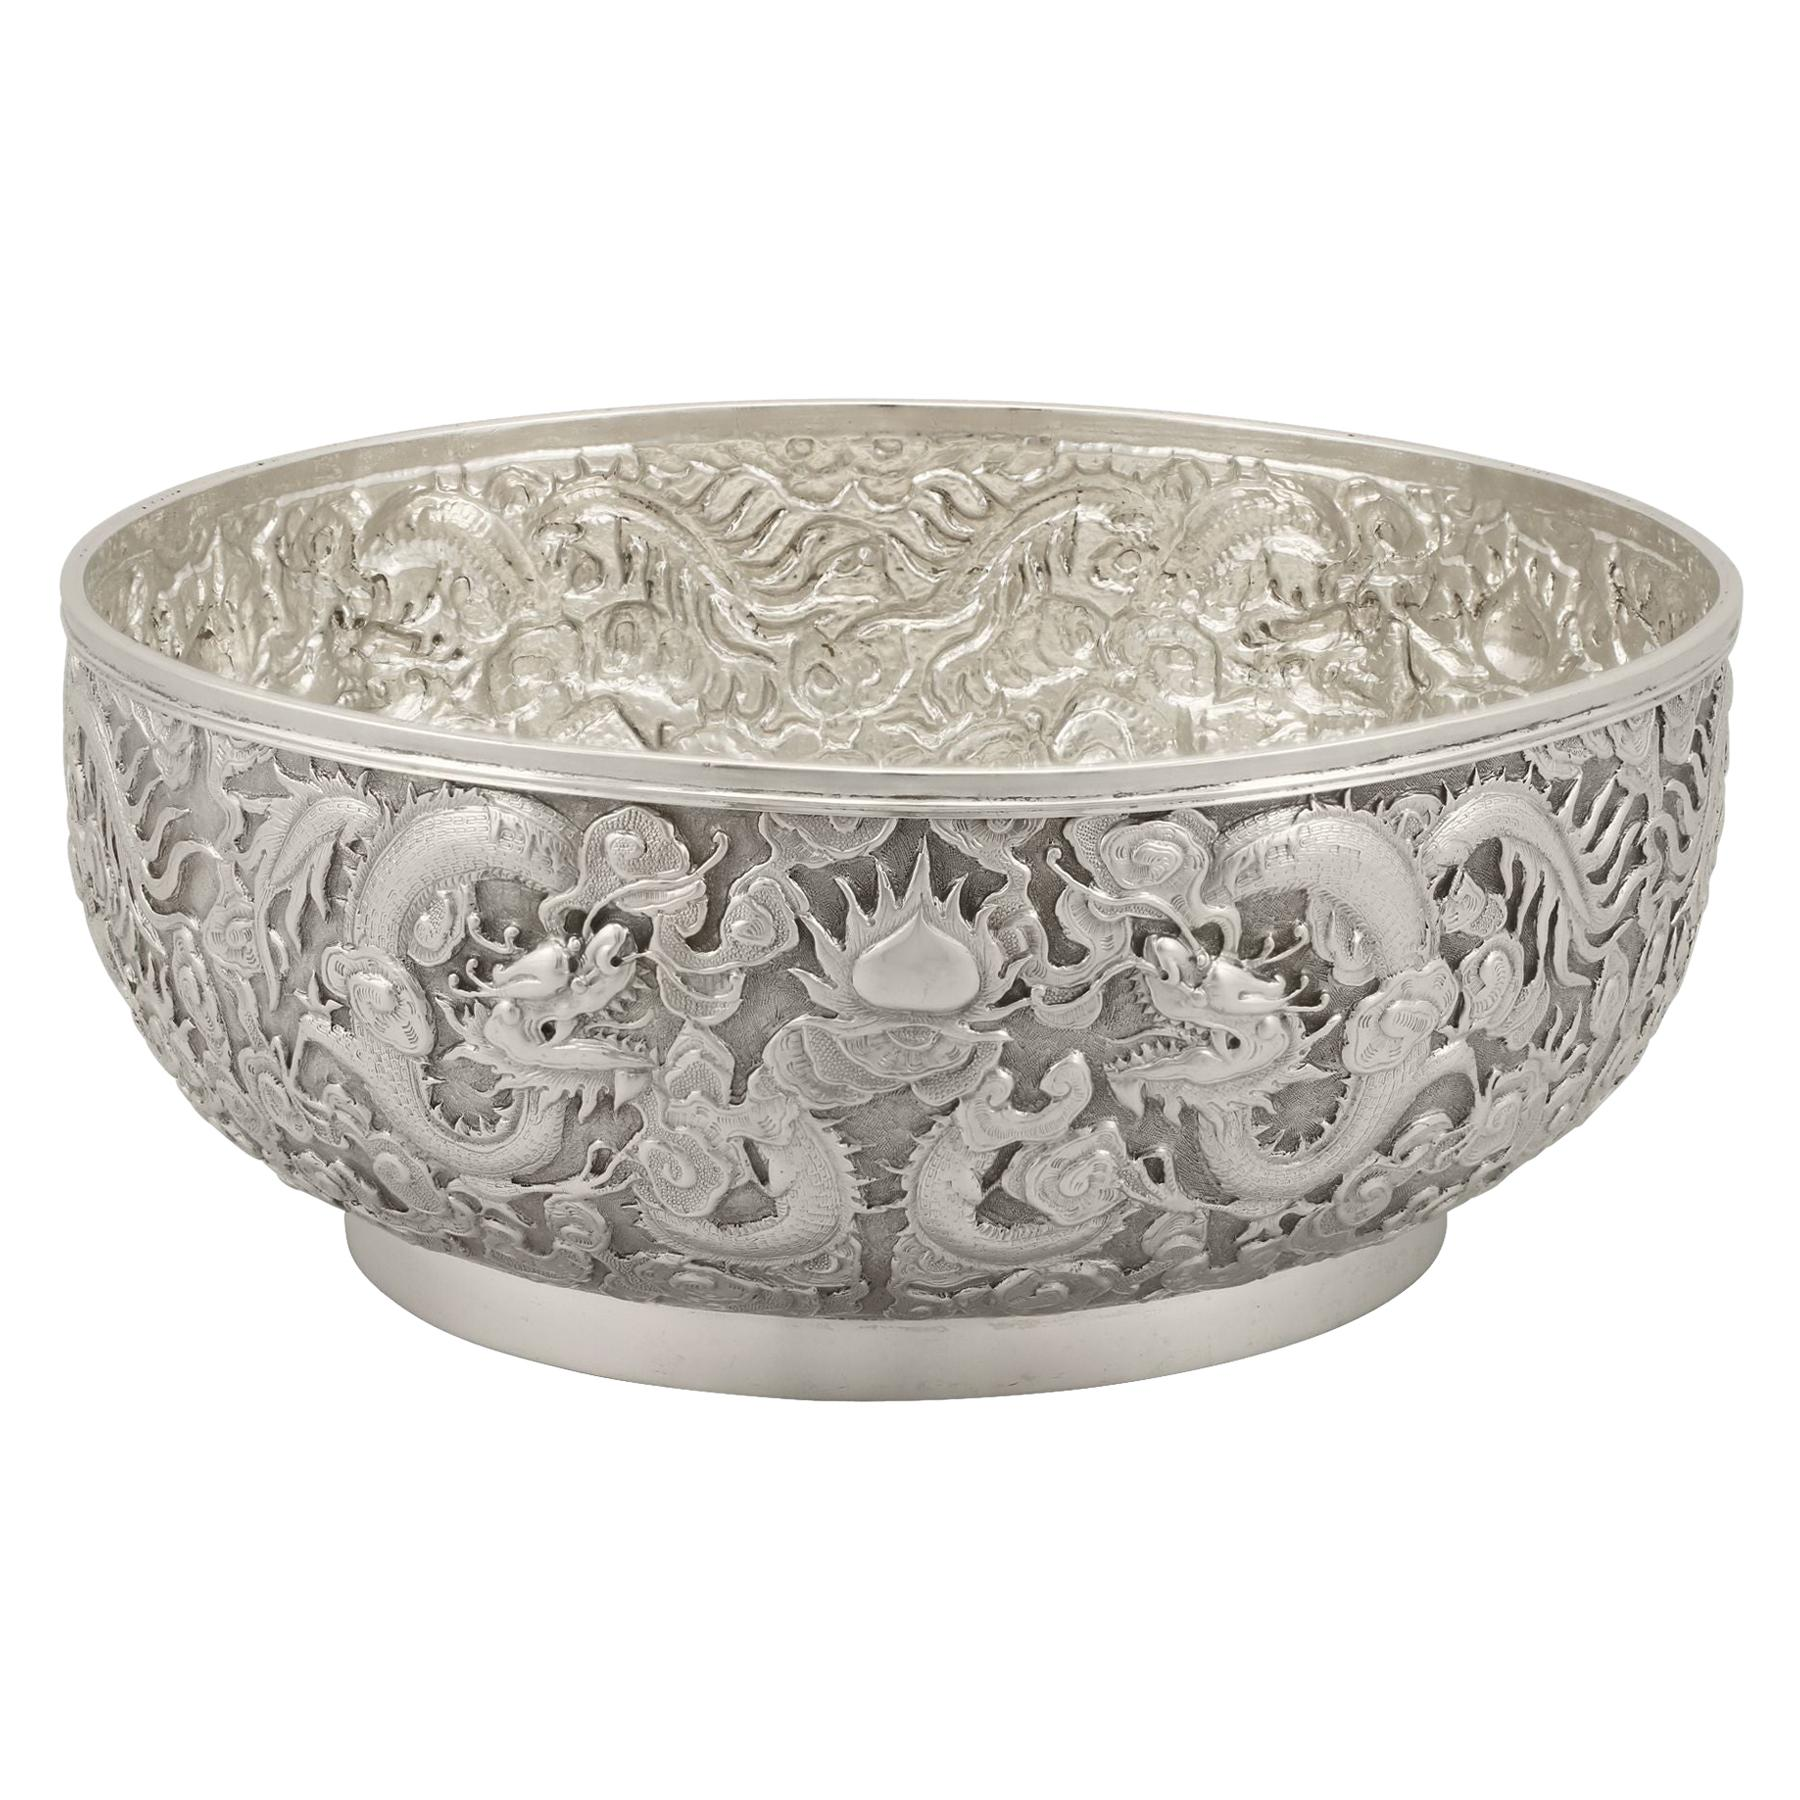 20th Century Chinese Export Silver Bowl Antique Circa 1900